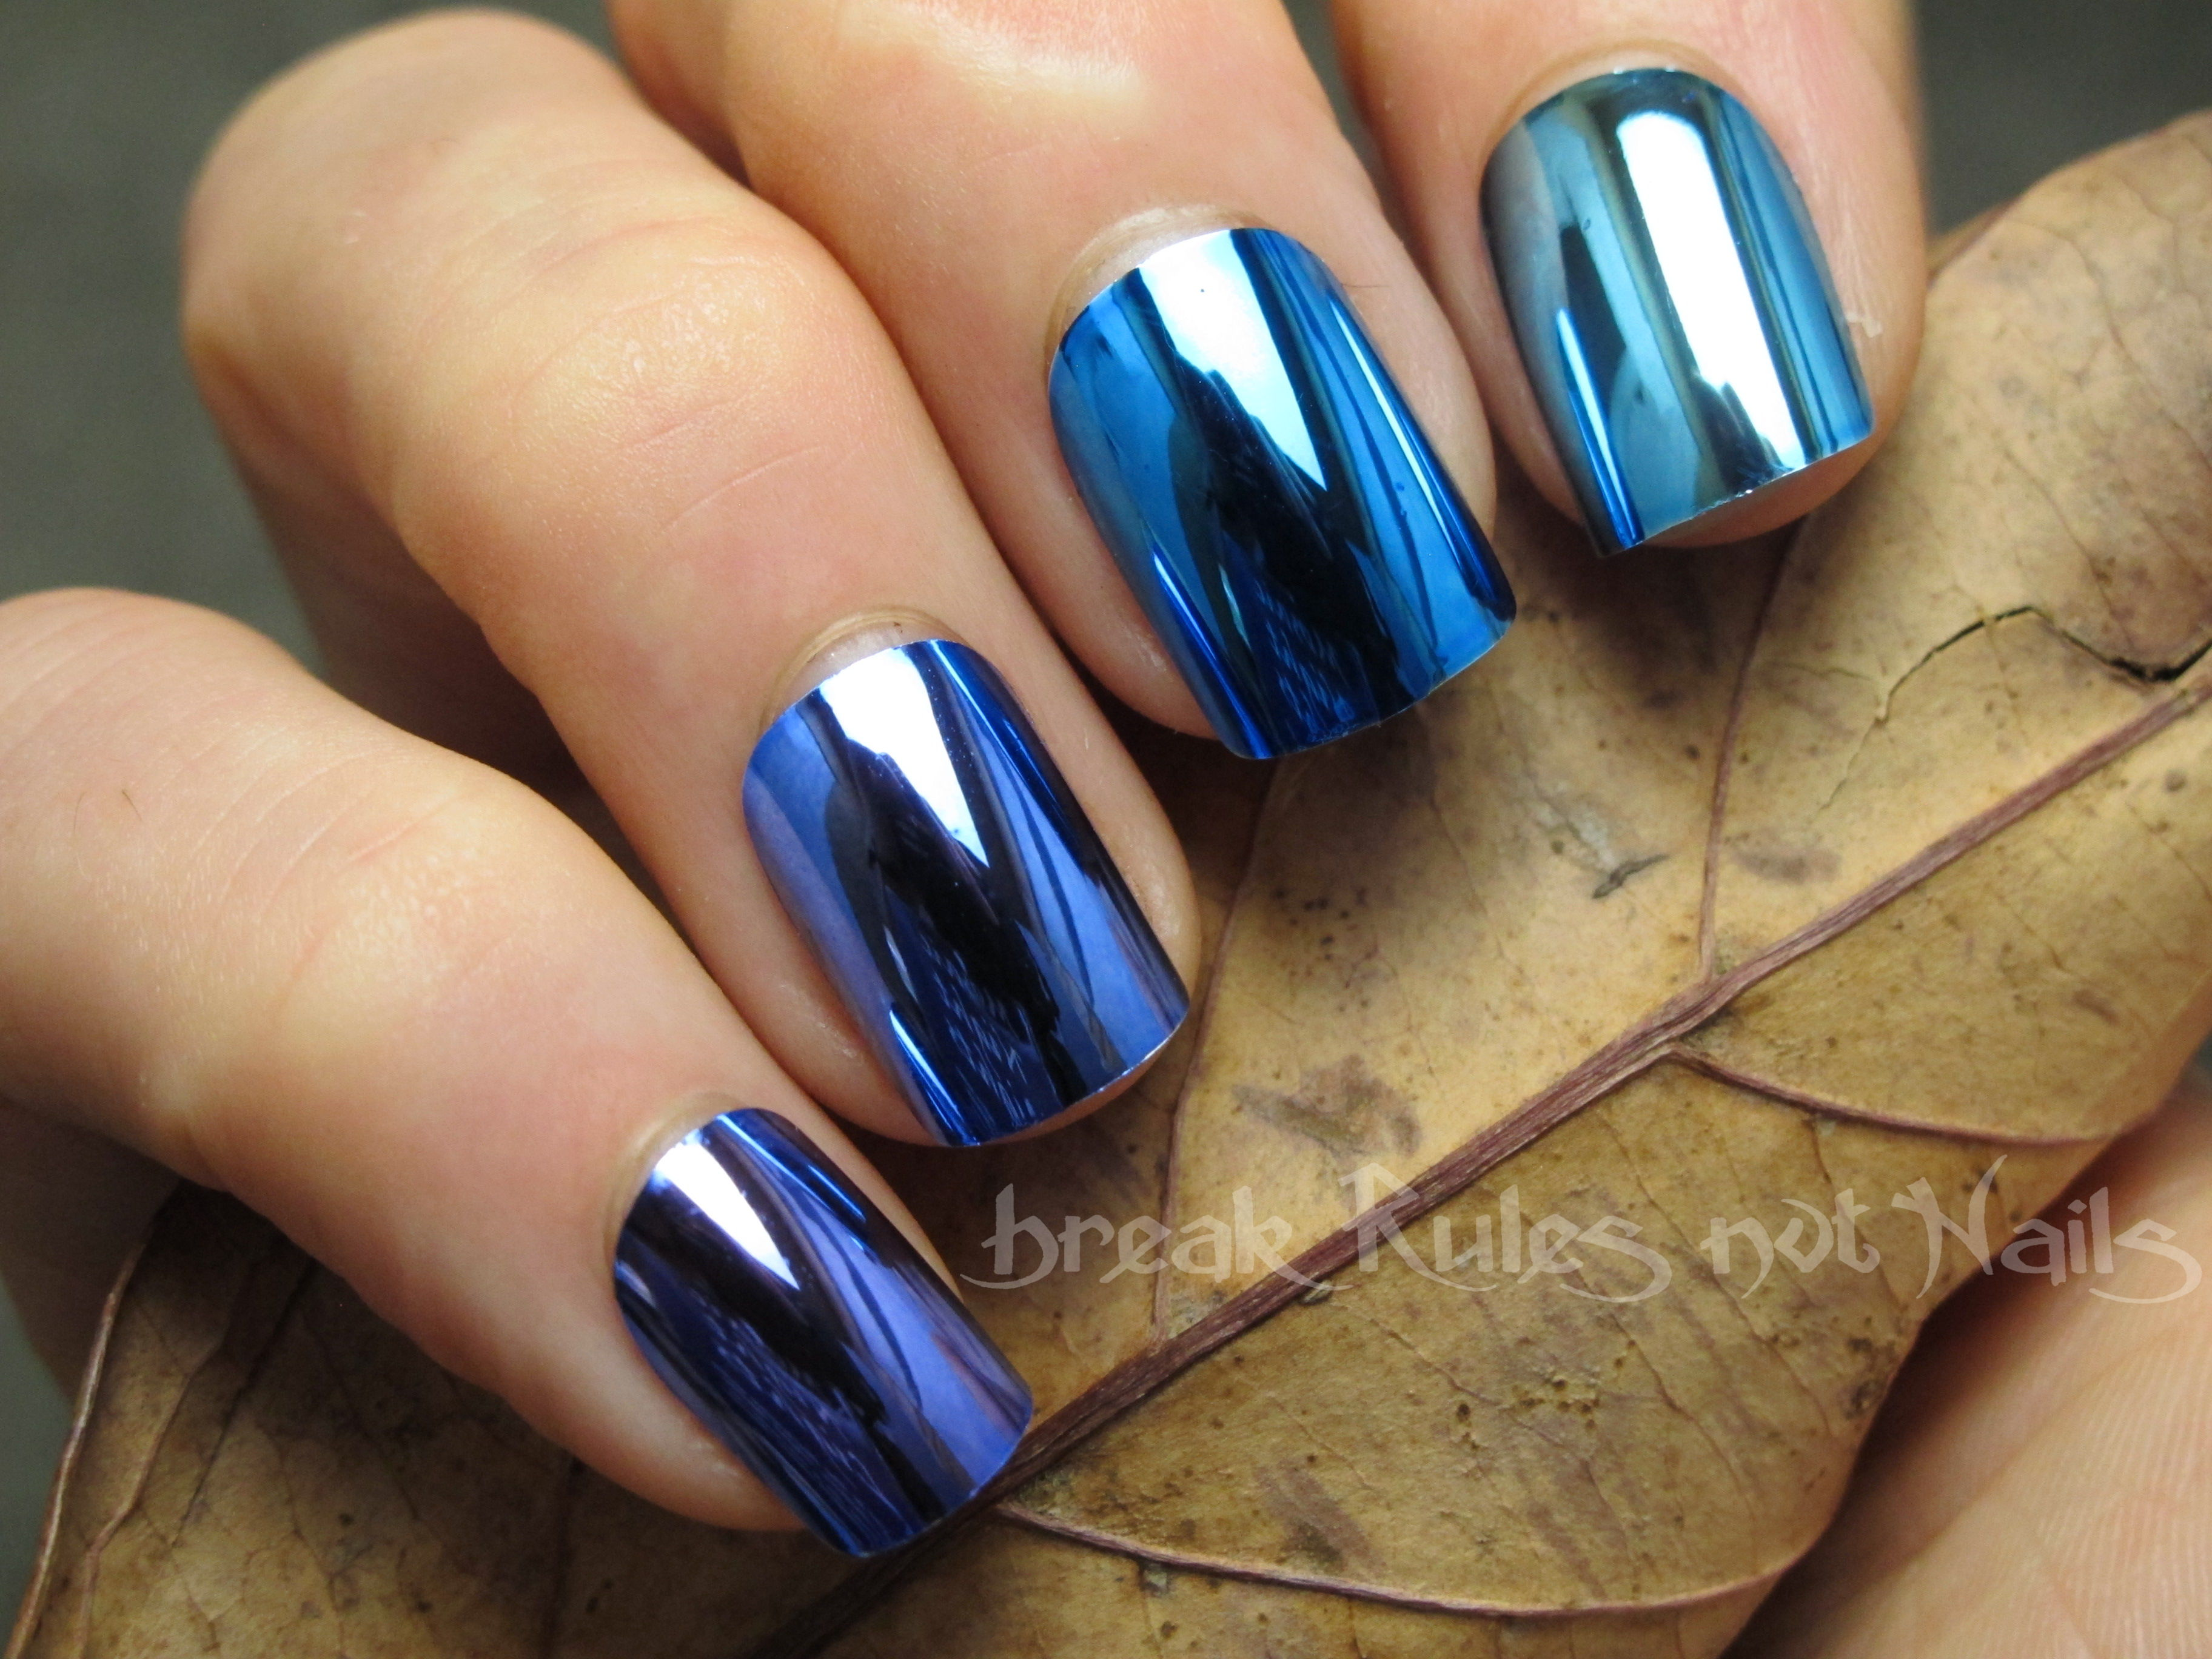 Chrome Nail Designs - Nails Gallery